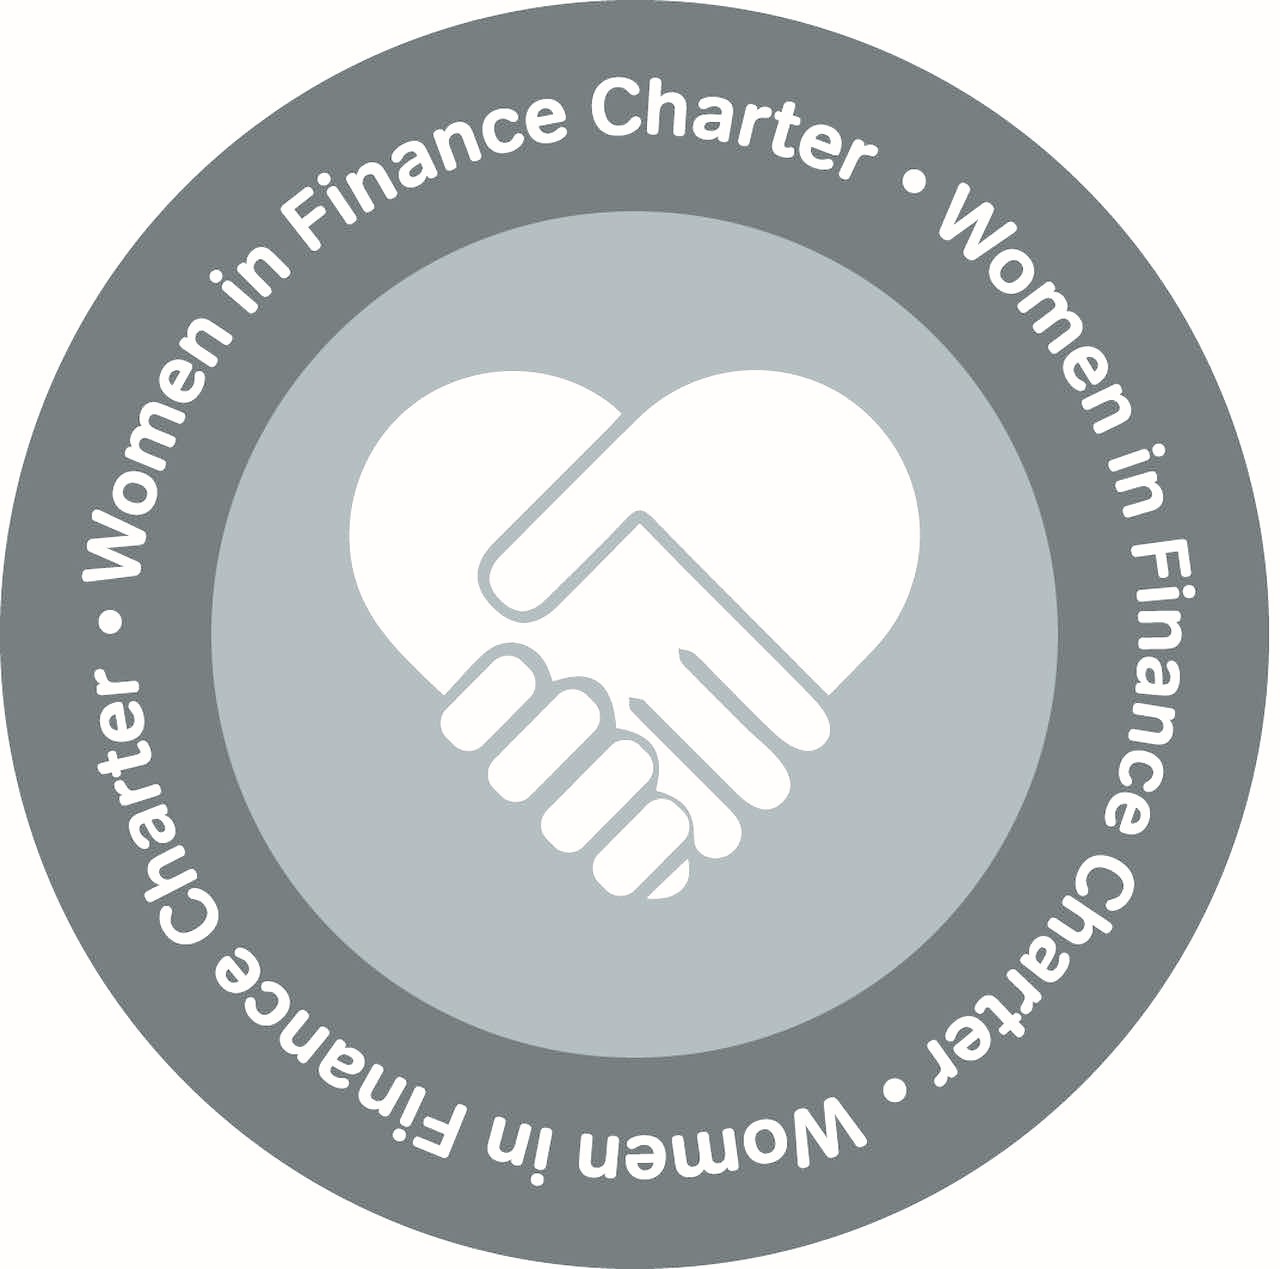 E2W commits to Women in Finance Charter